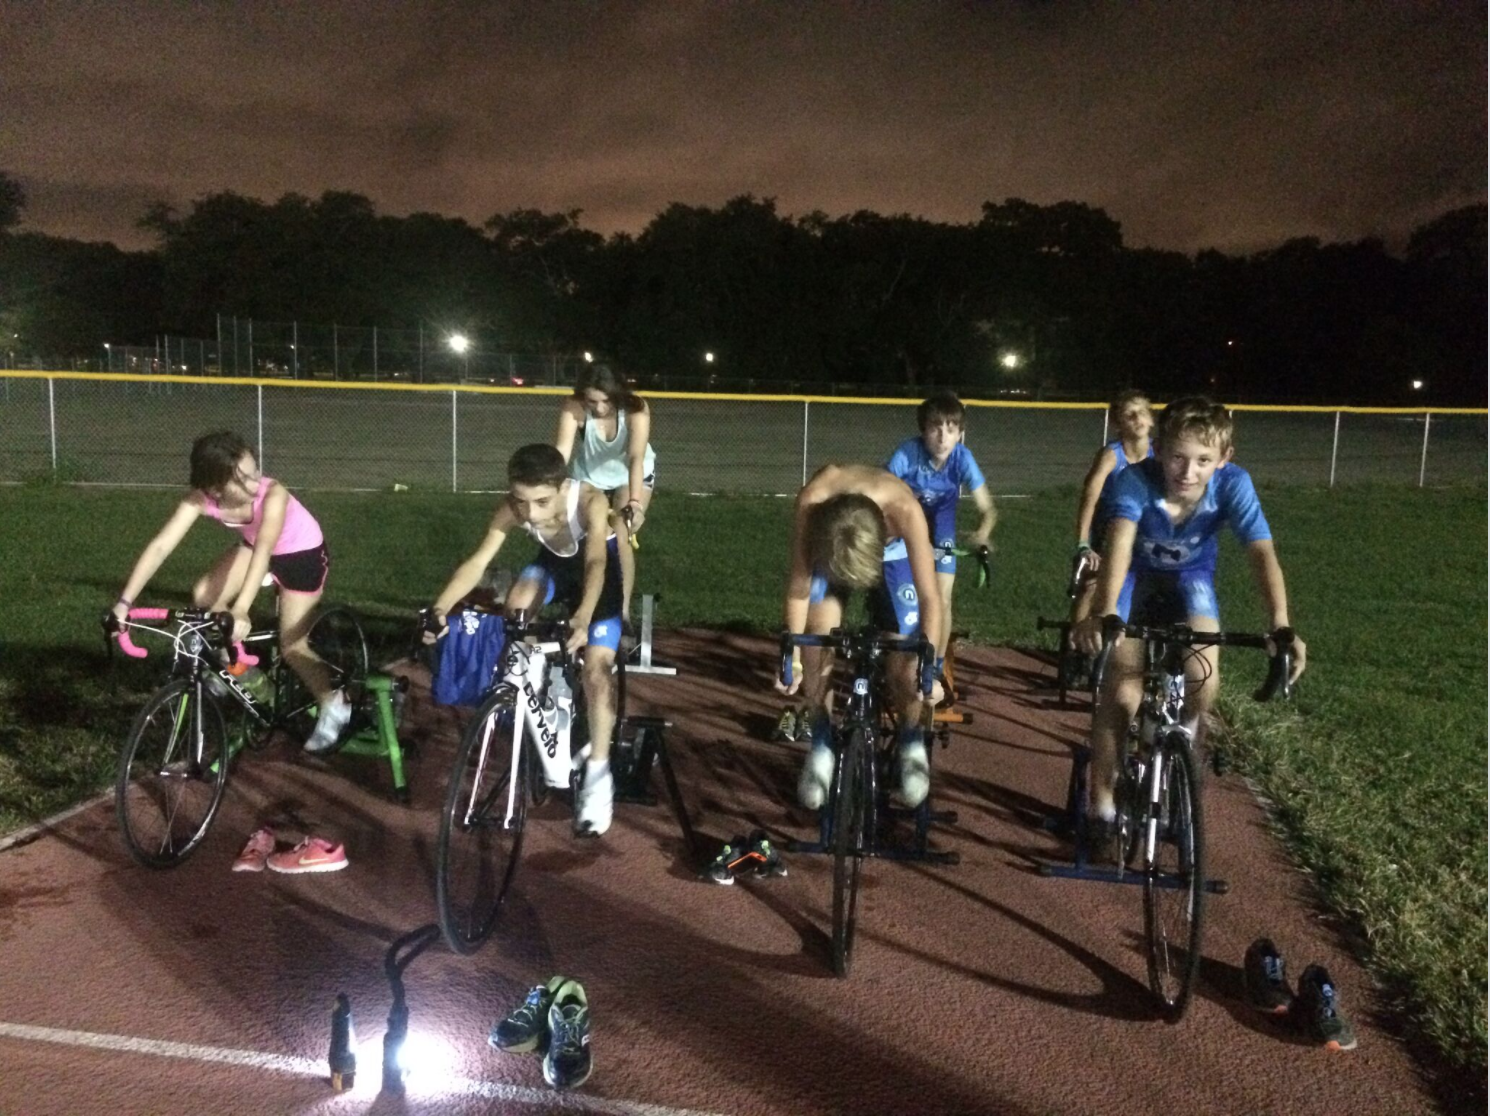 Our services - Personalized Training Plans for triathlon, duathlon, run, bike, and more